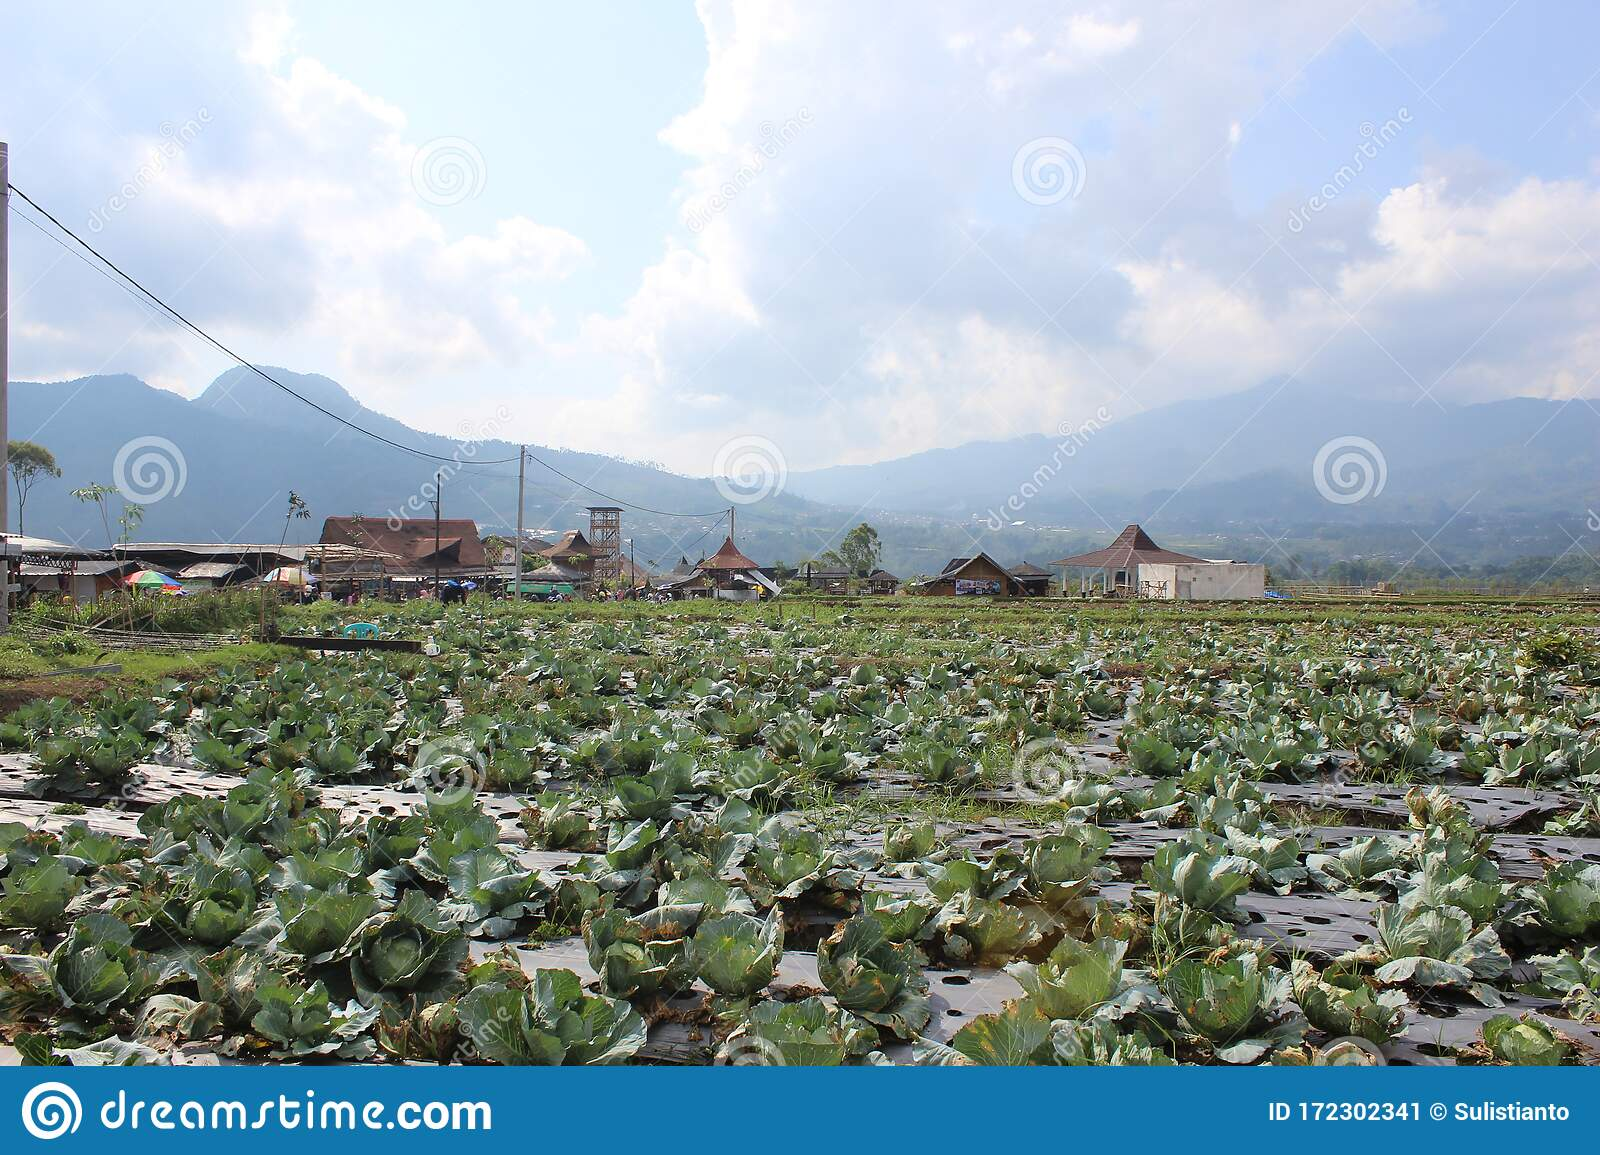 Cabbage Farming In The City Of Malang Indonesia Stock Image Image Of Nature Outdoor 172302341